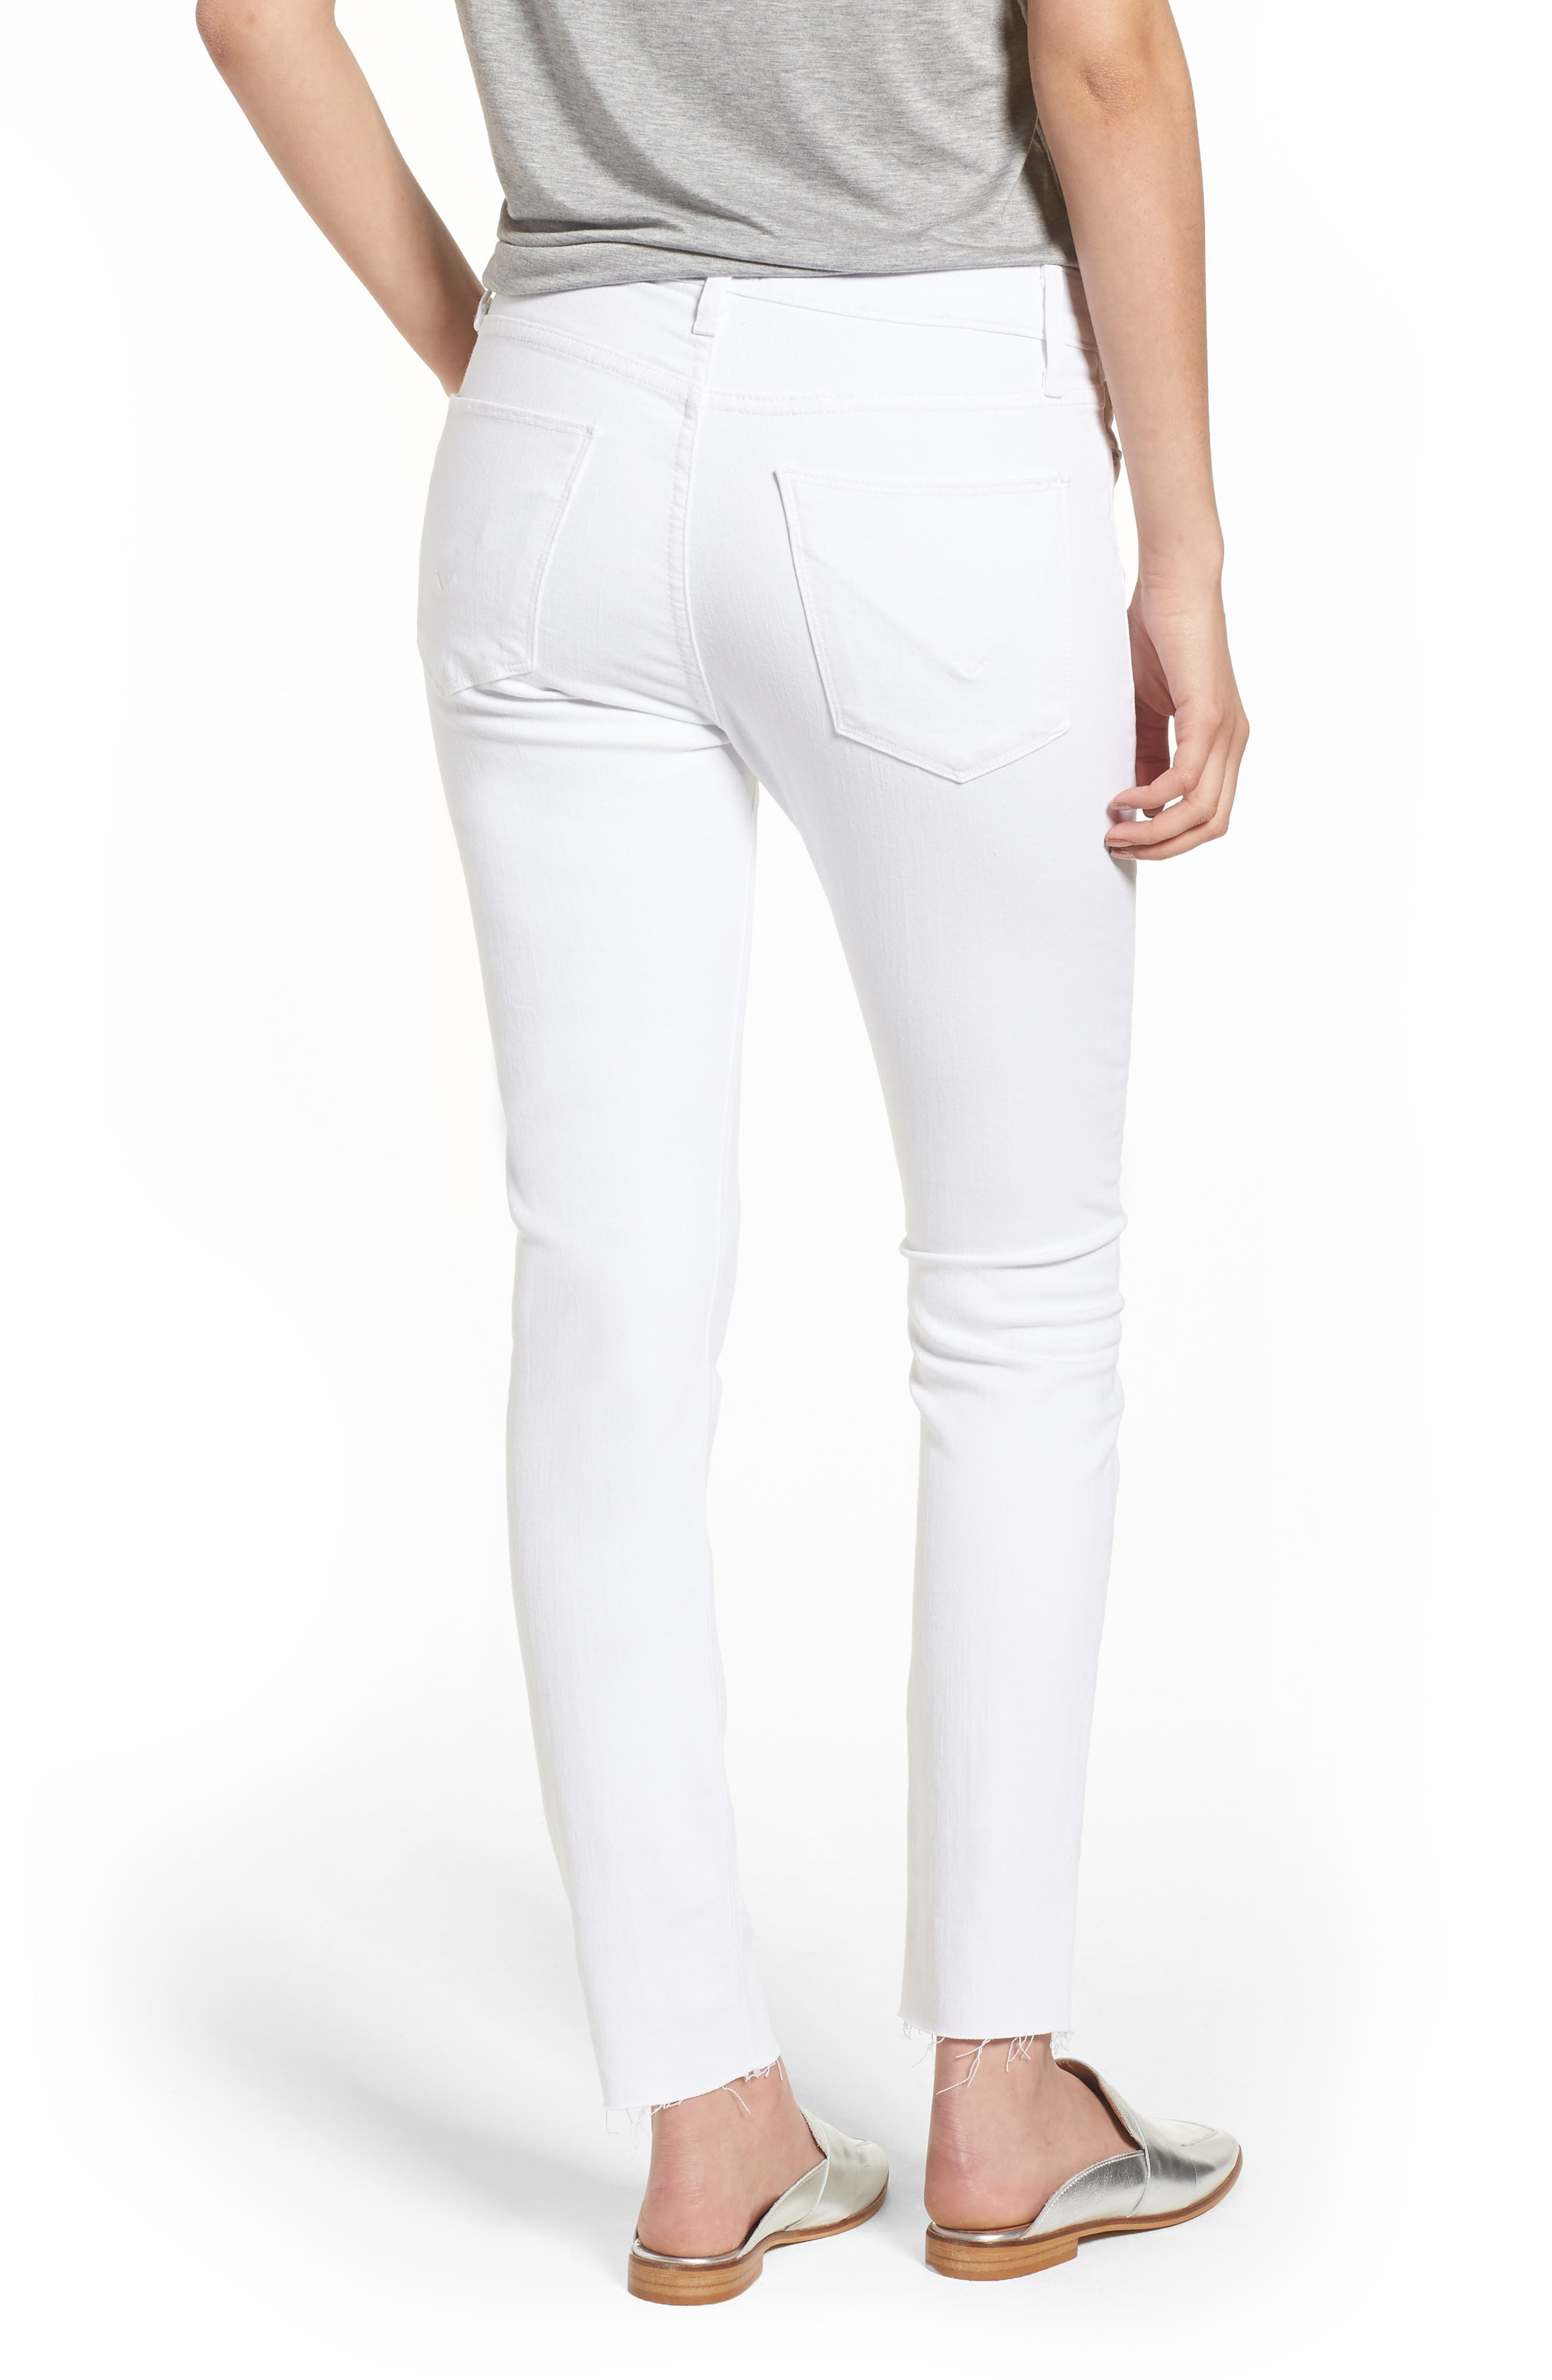 Barbara High Waist Raw Hem Ankle Skinny Jeans,                             Alternate thumbnail 2, color,                             Optical White